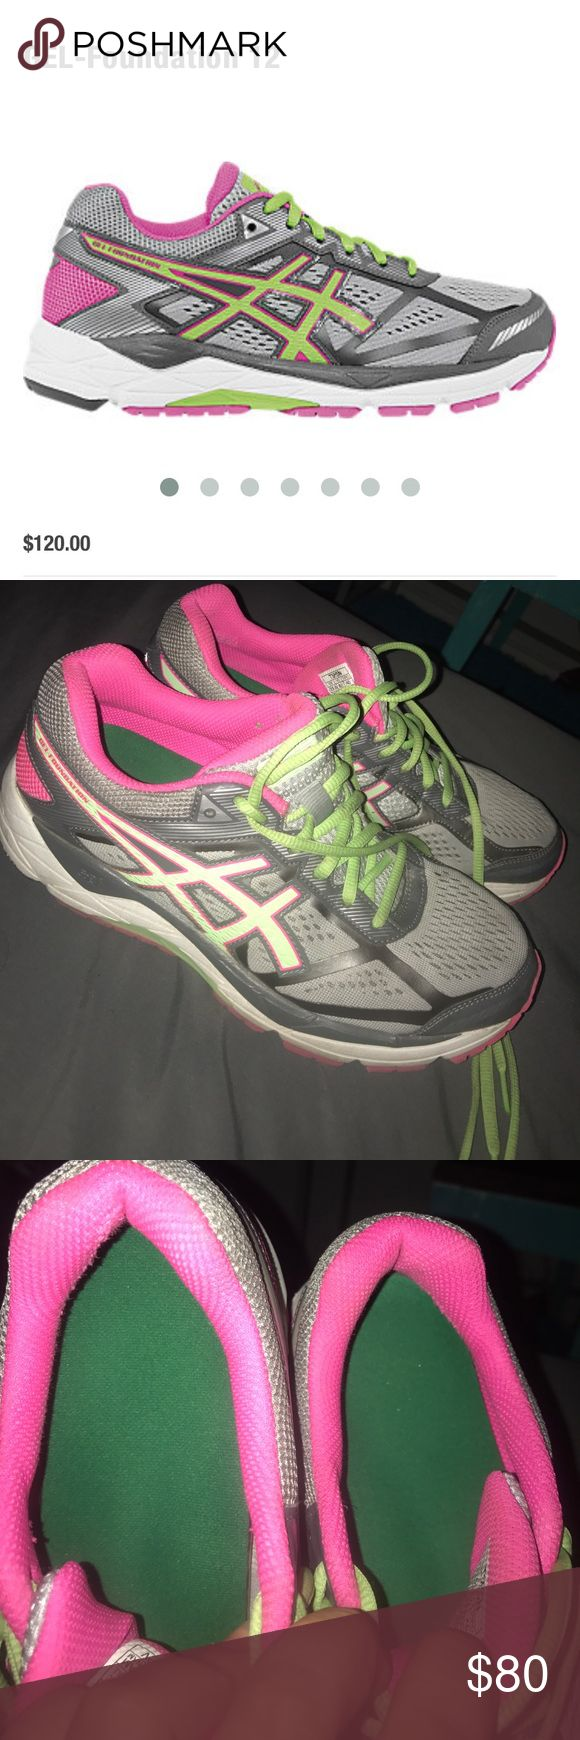 asics gel foundation 10 rouge